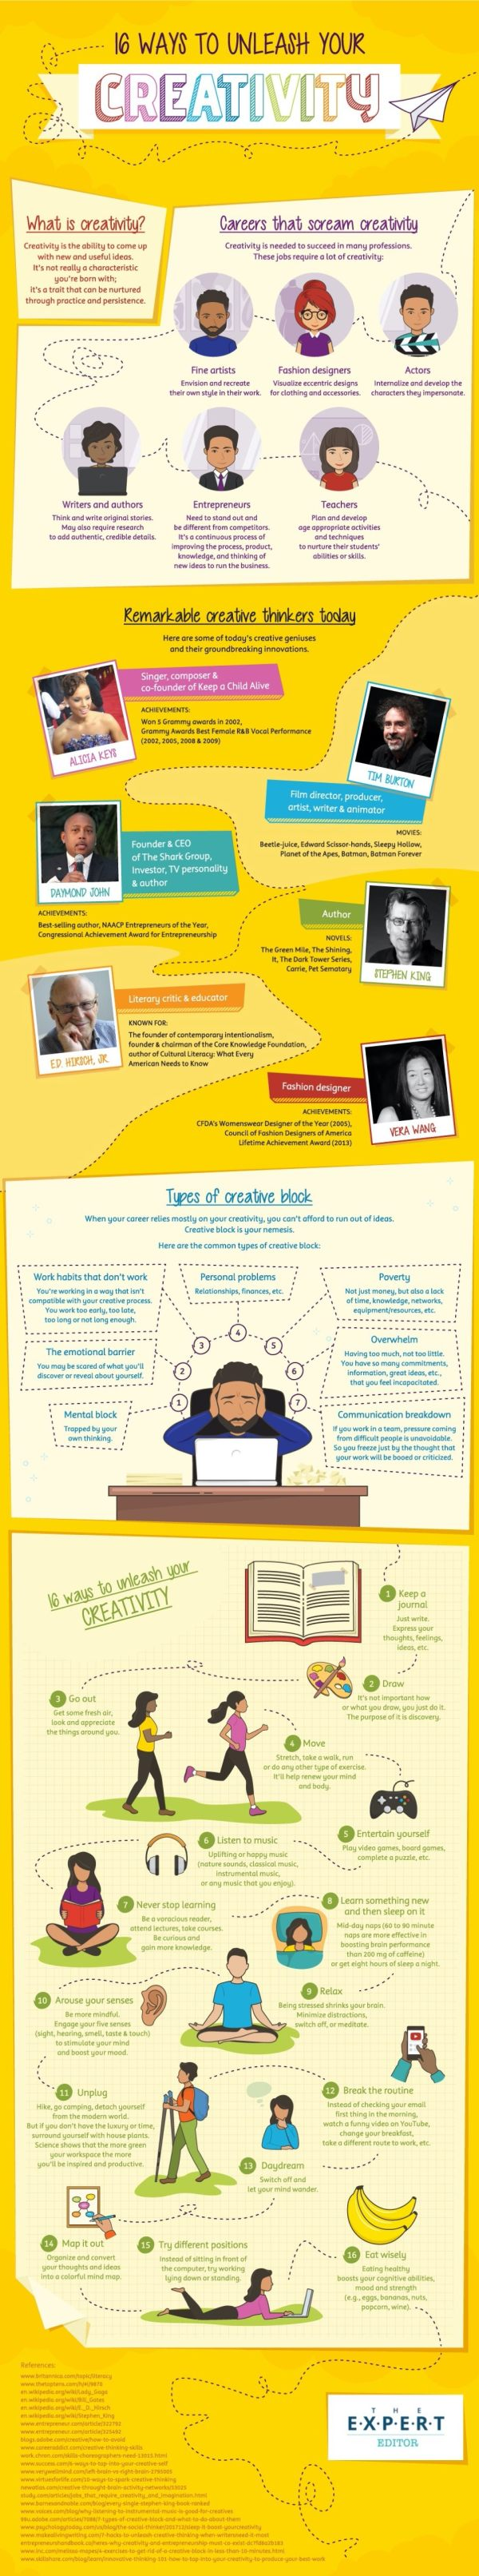 16 little things to boost your creativity - full infographic